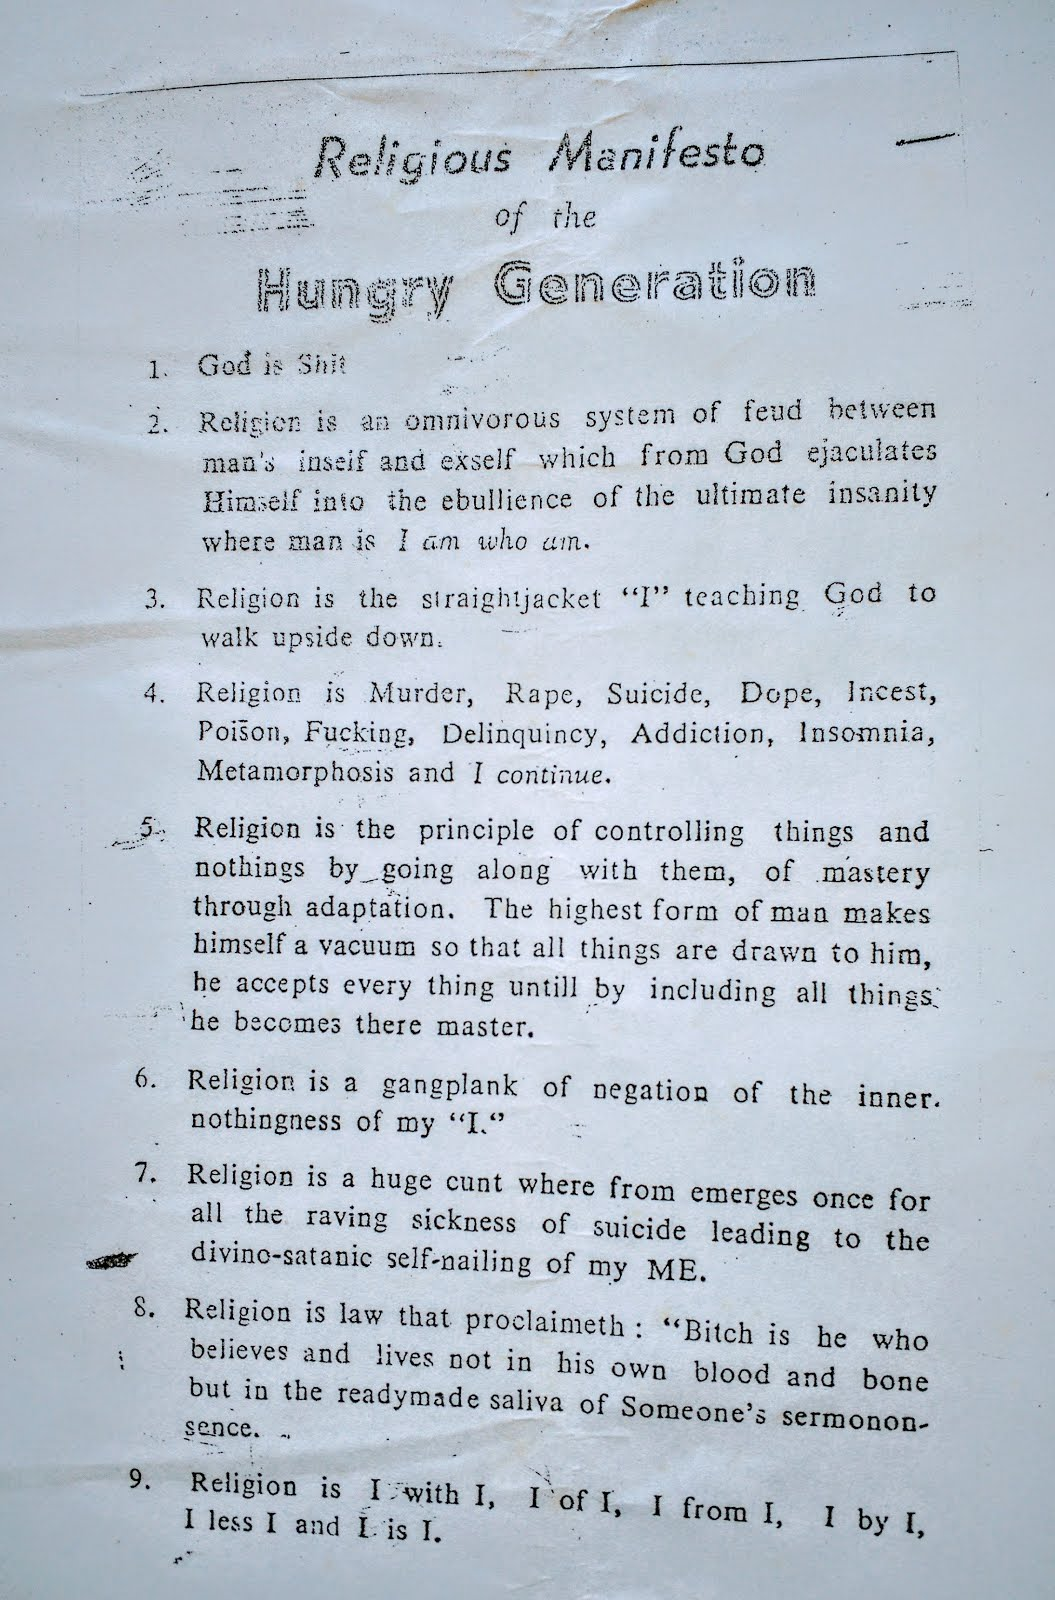 Hungryalist bulletin published in 1963